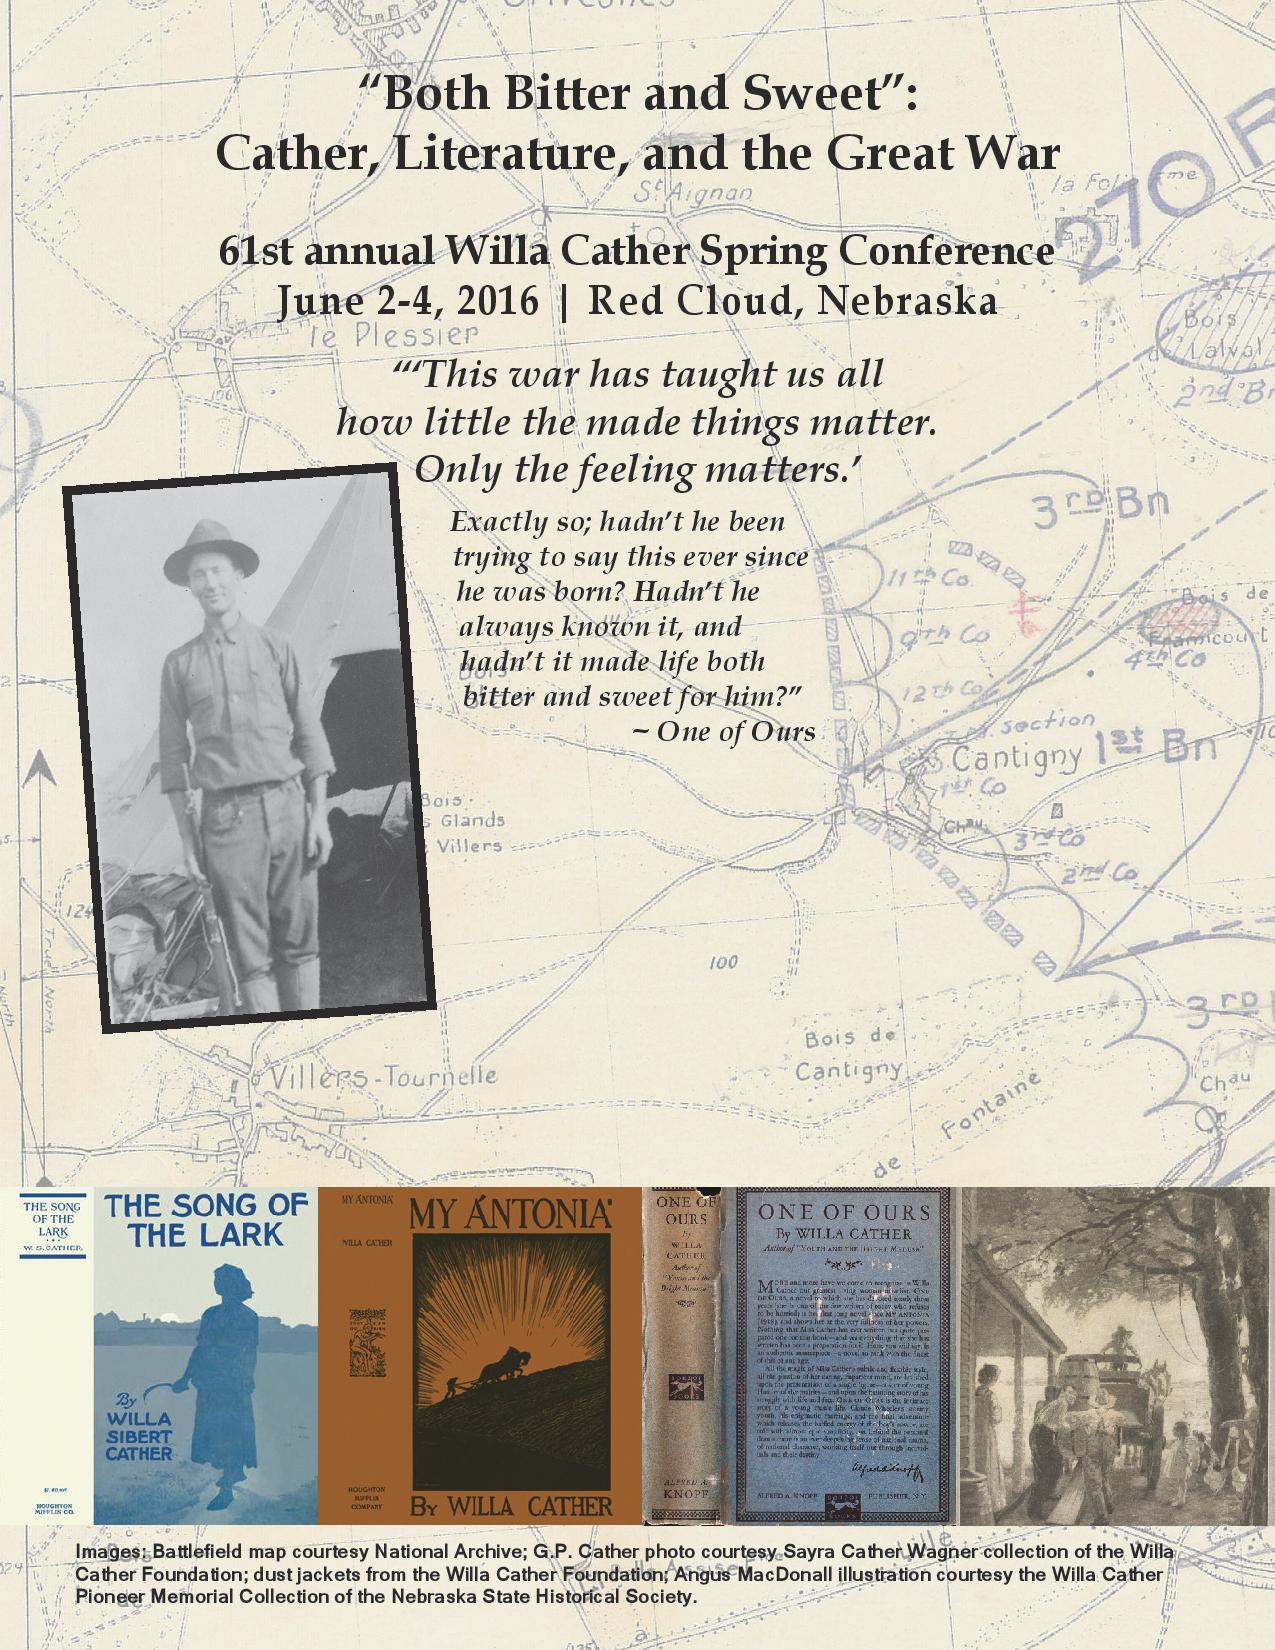 St Annual Willa Cather Spring Conference The Willa Cather - Willa cather us map